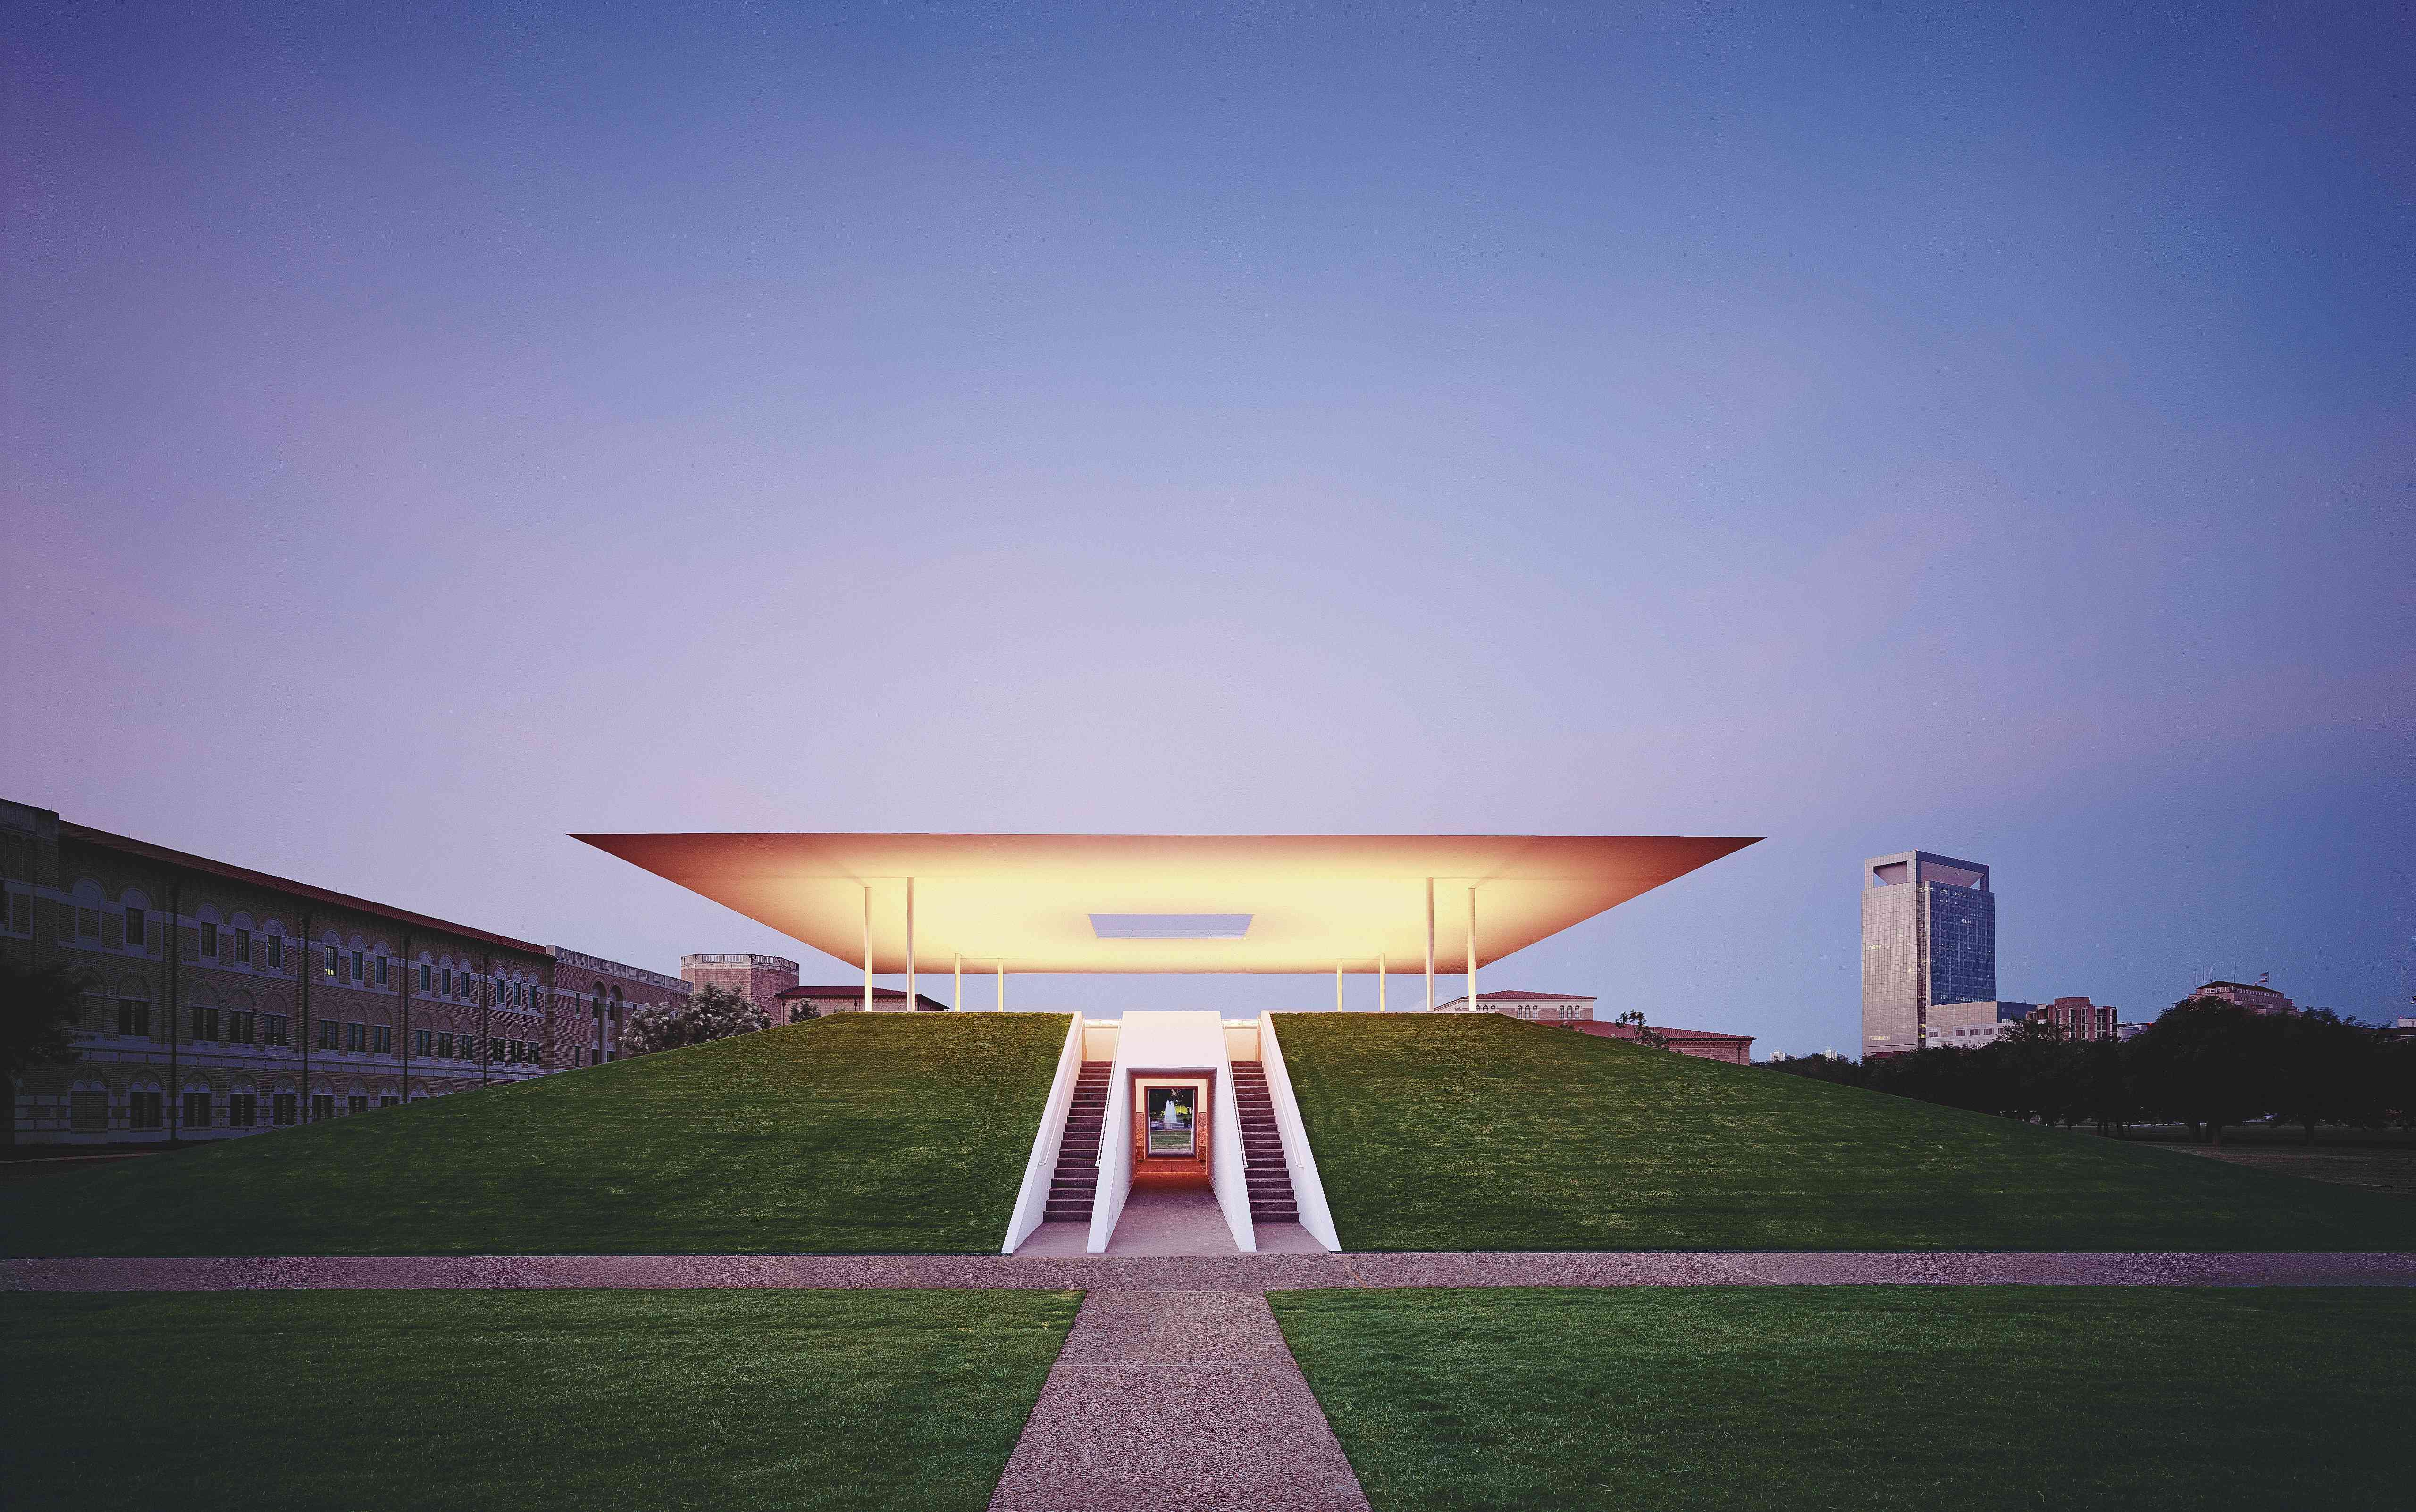 The Skyspace exhibit at sunset at Rice University